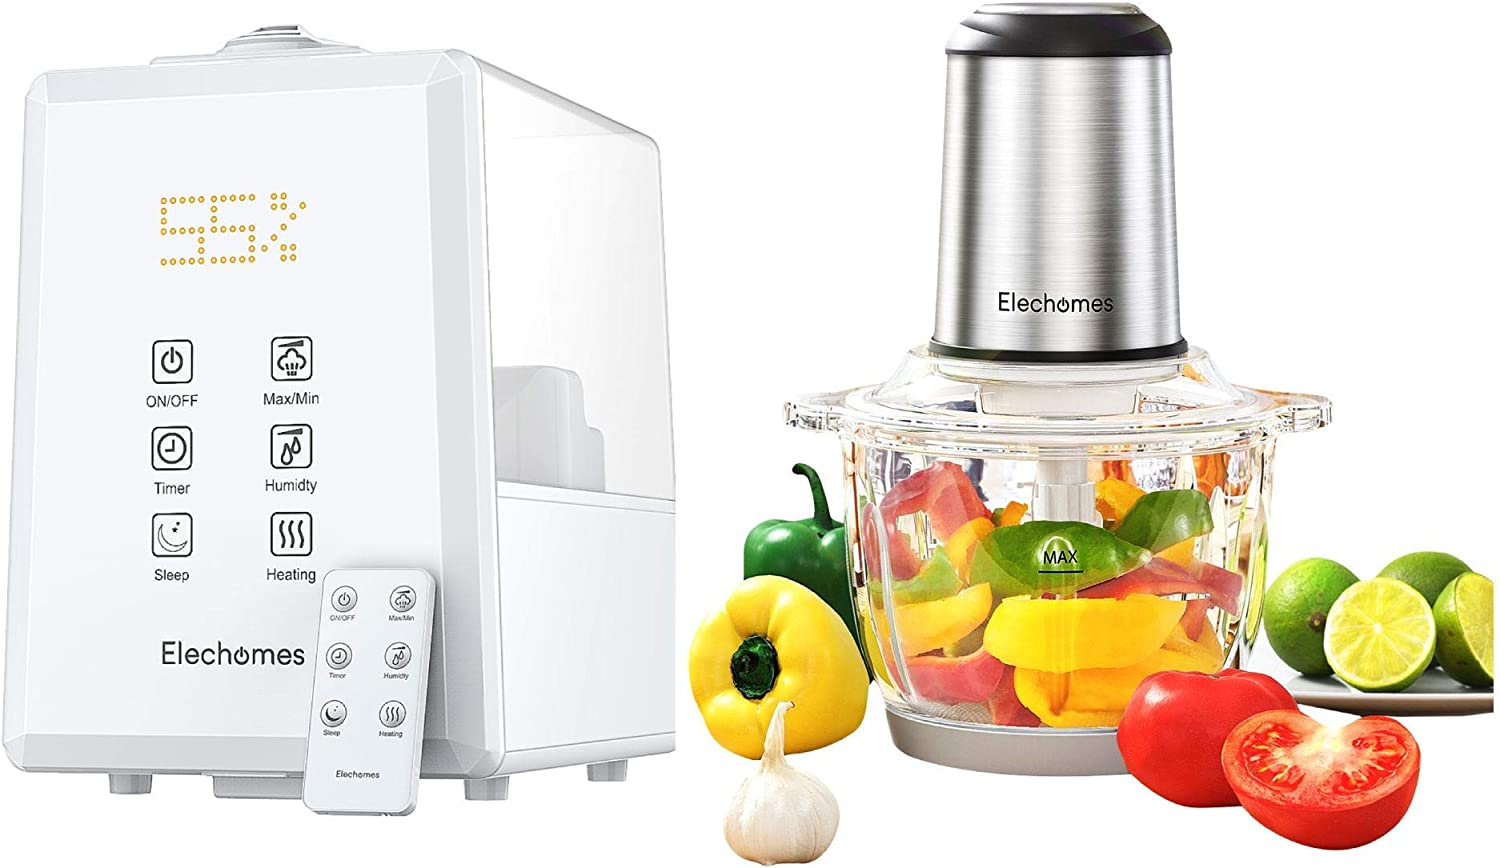 Elechomes White UC5501 6L Warm & Cool Mist Humidifier and Elechomes 8 Cup Electric Food Chopper & Processor Bundle